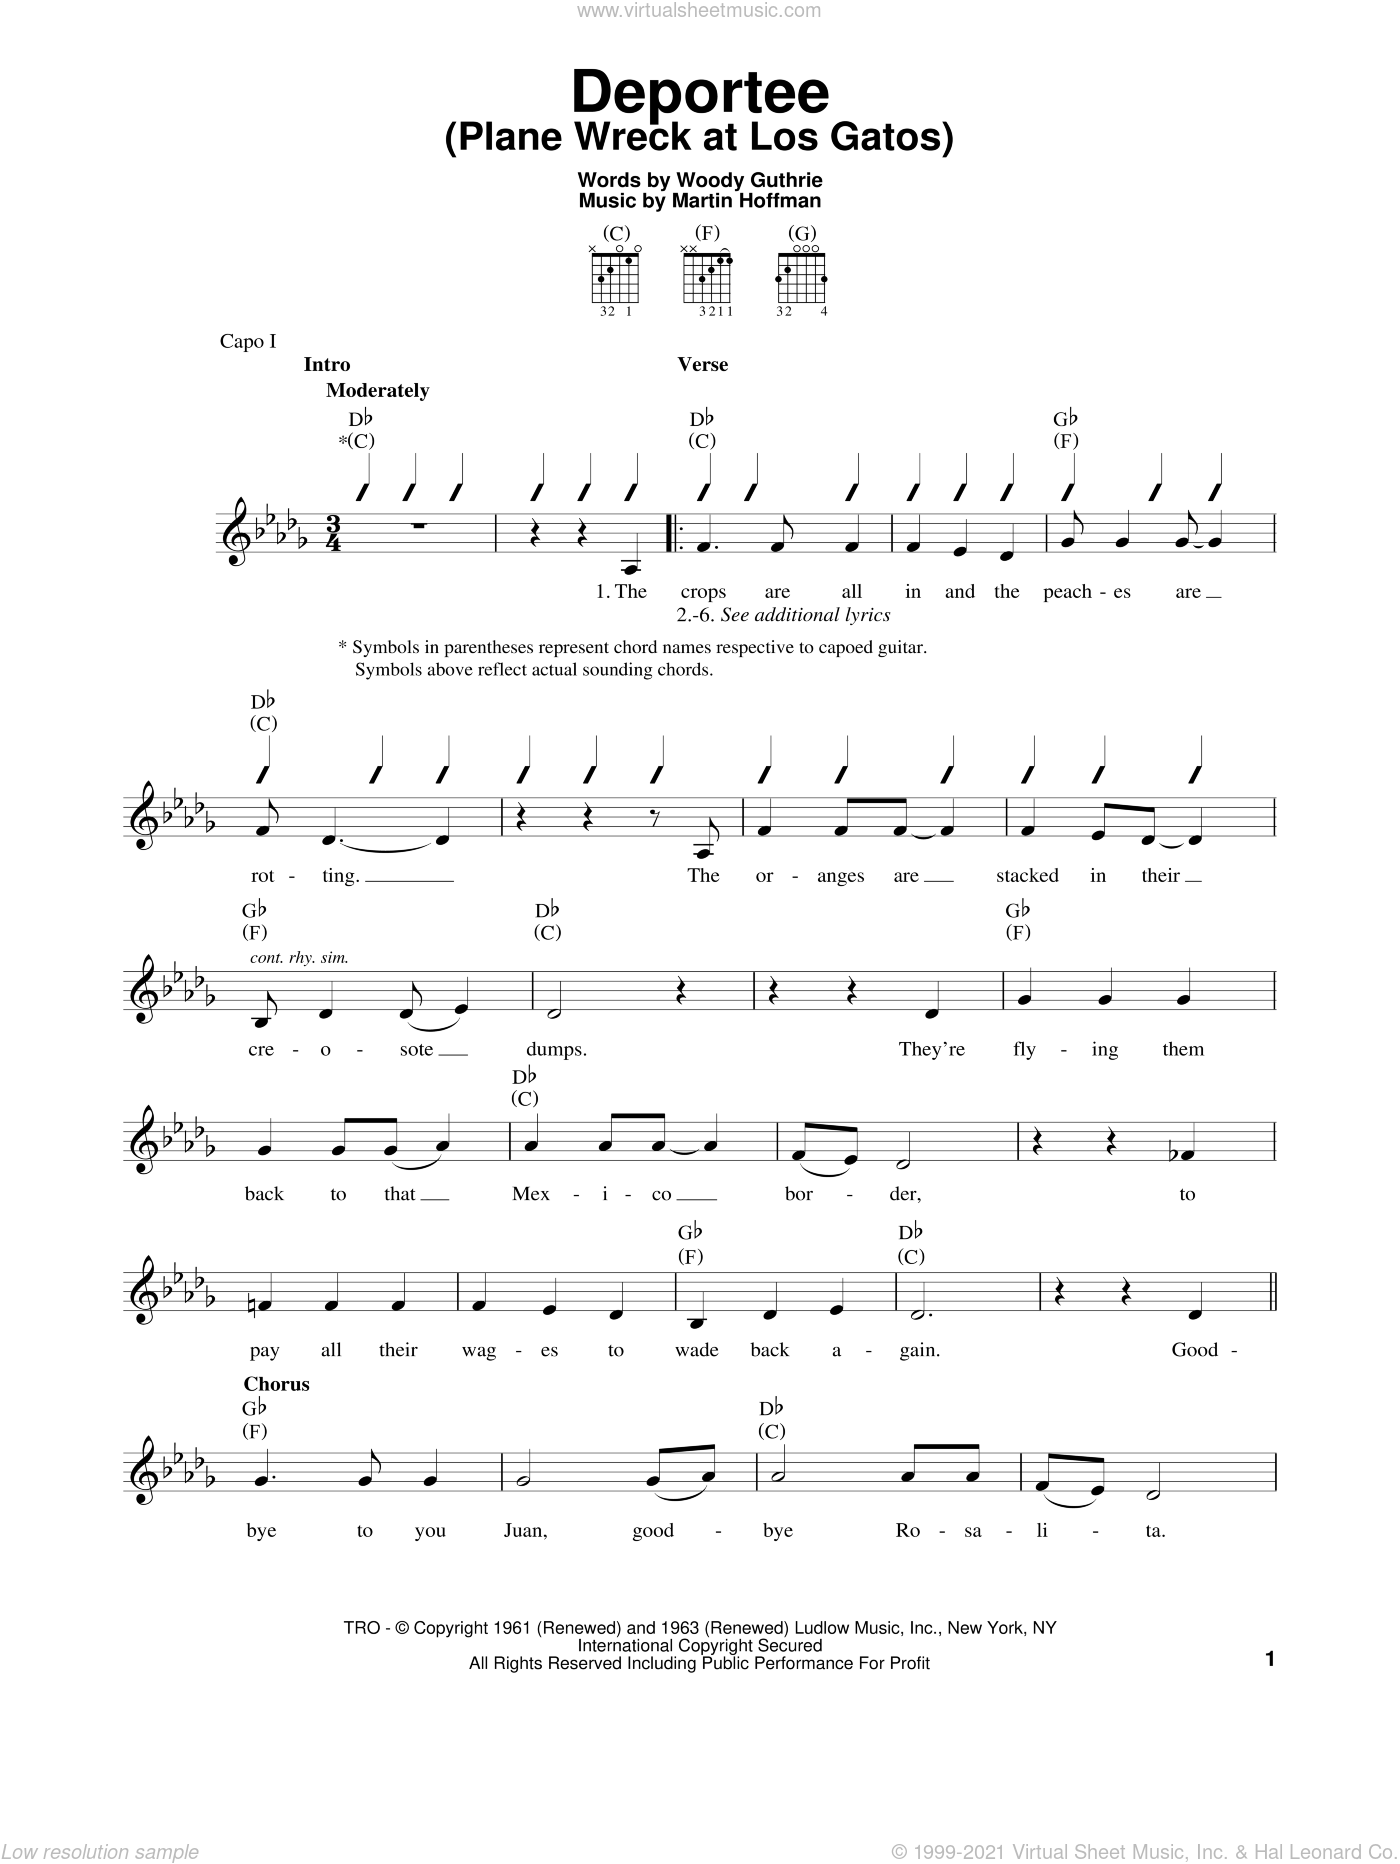 Deportee (Plane Wreck At Los Gatos) sheet music for guitar solo (chords) by Martin Hoffman and Woody Guthrie. Score Image Preview.